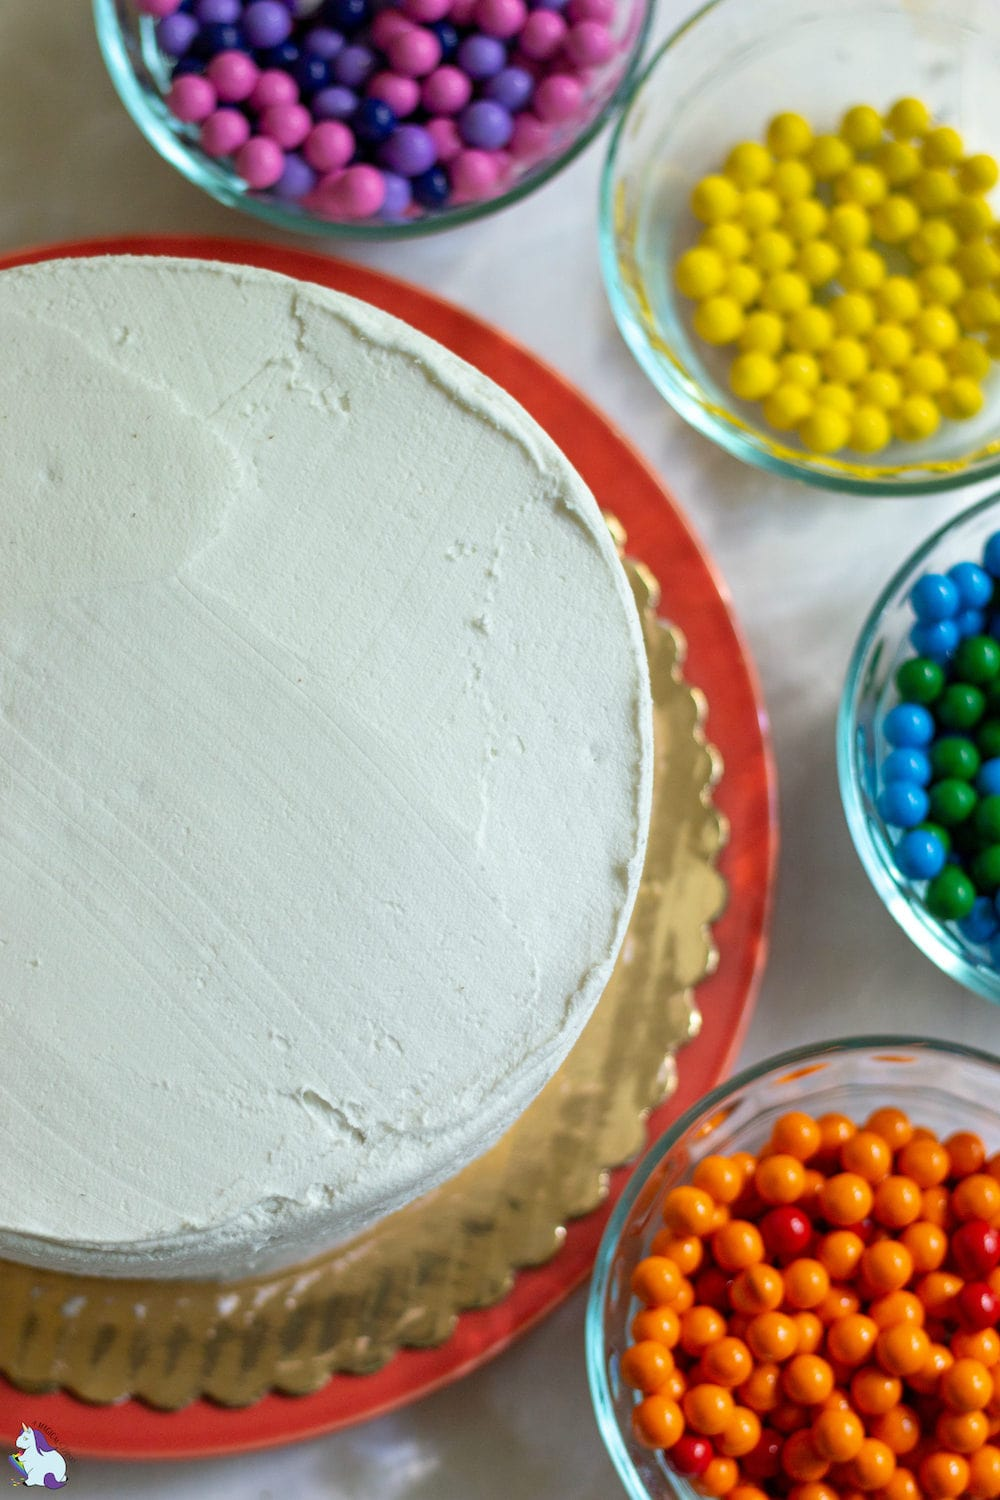 Easy cake decorating - Magical Rainbow cake with Sixlets